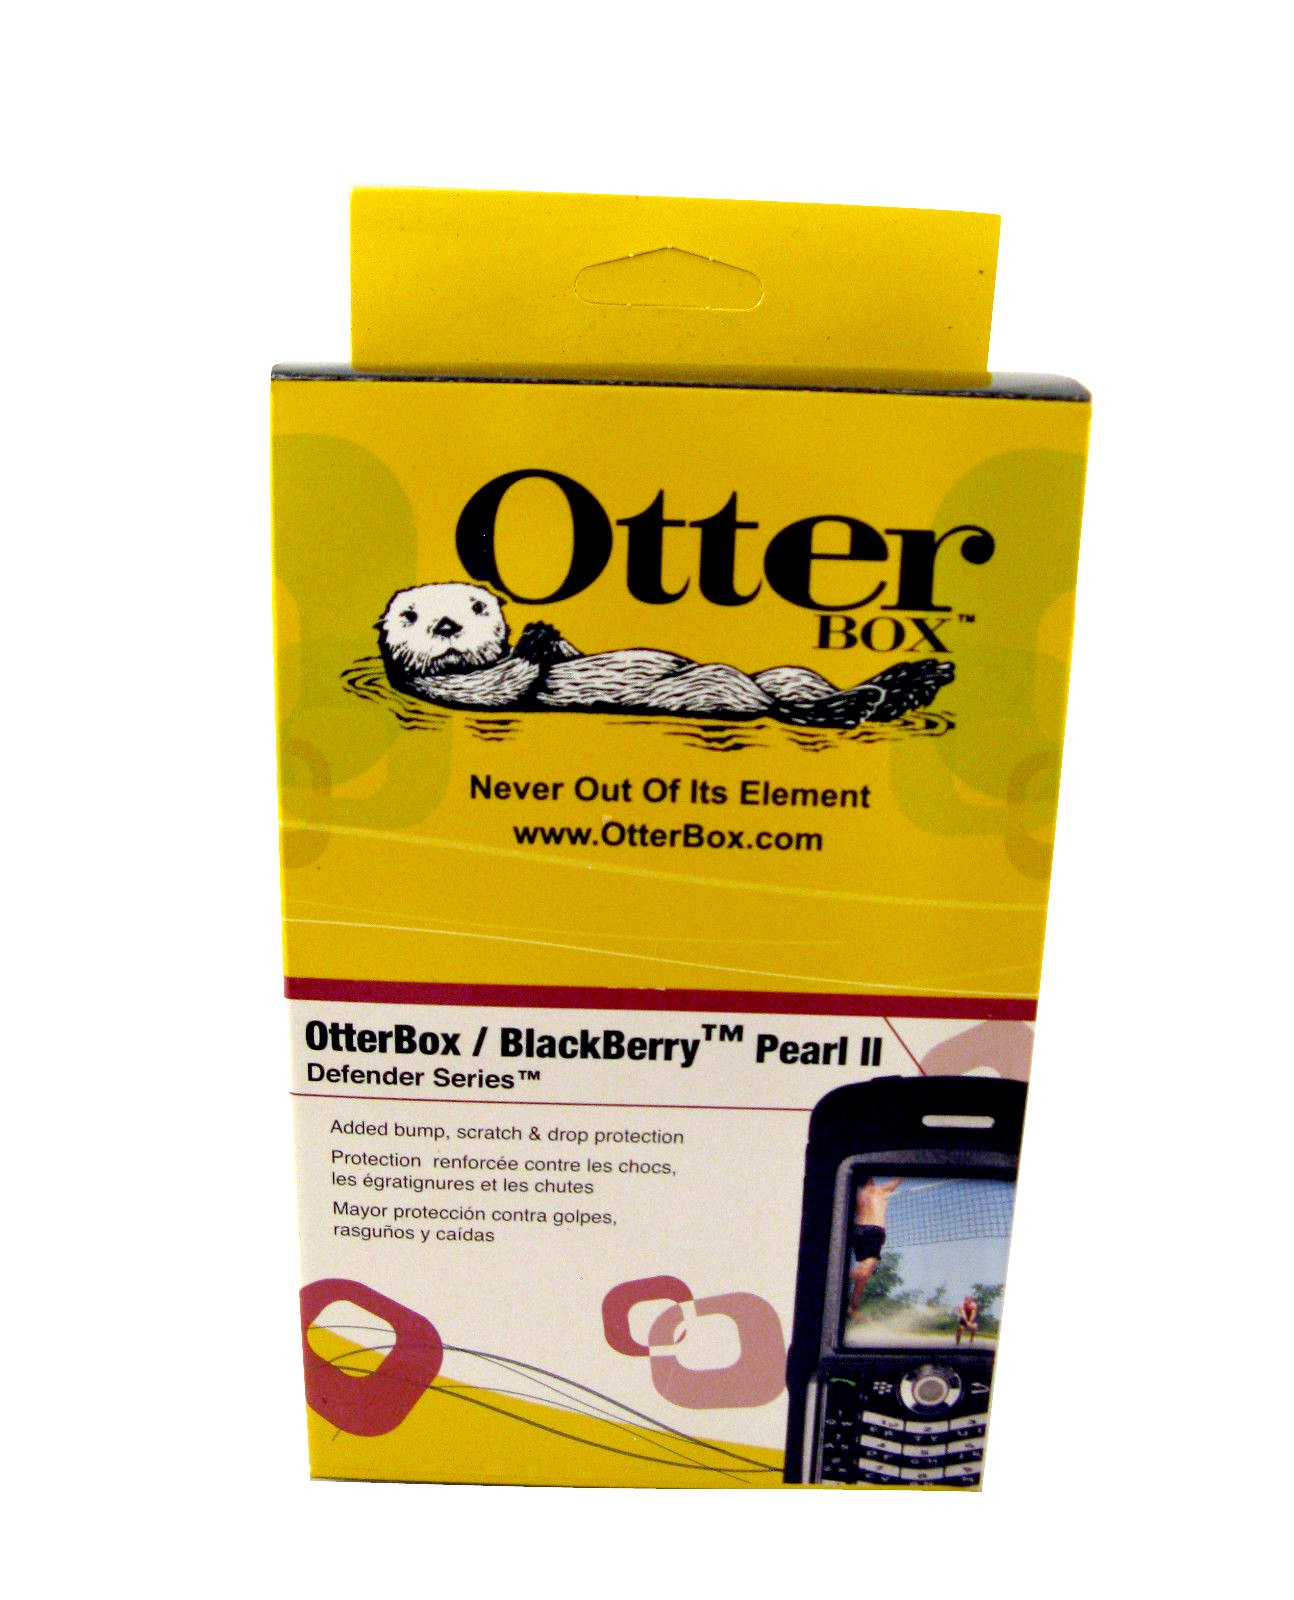 OtterBox Defender Case for BlackBerry Pearl II 8110/8120/8130 (Black)